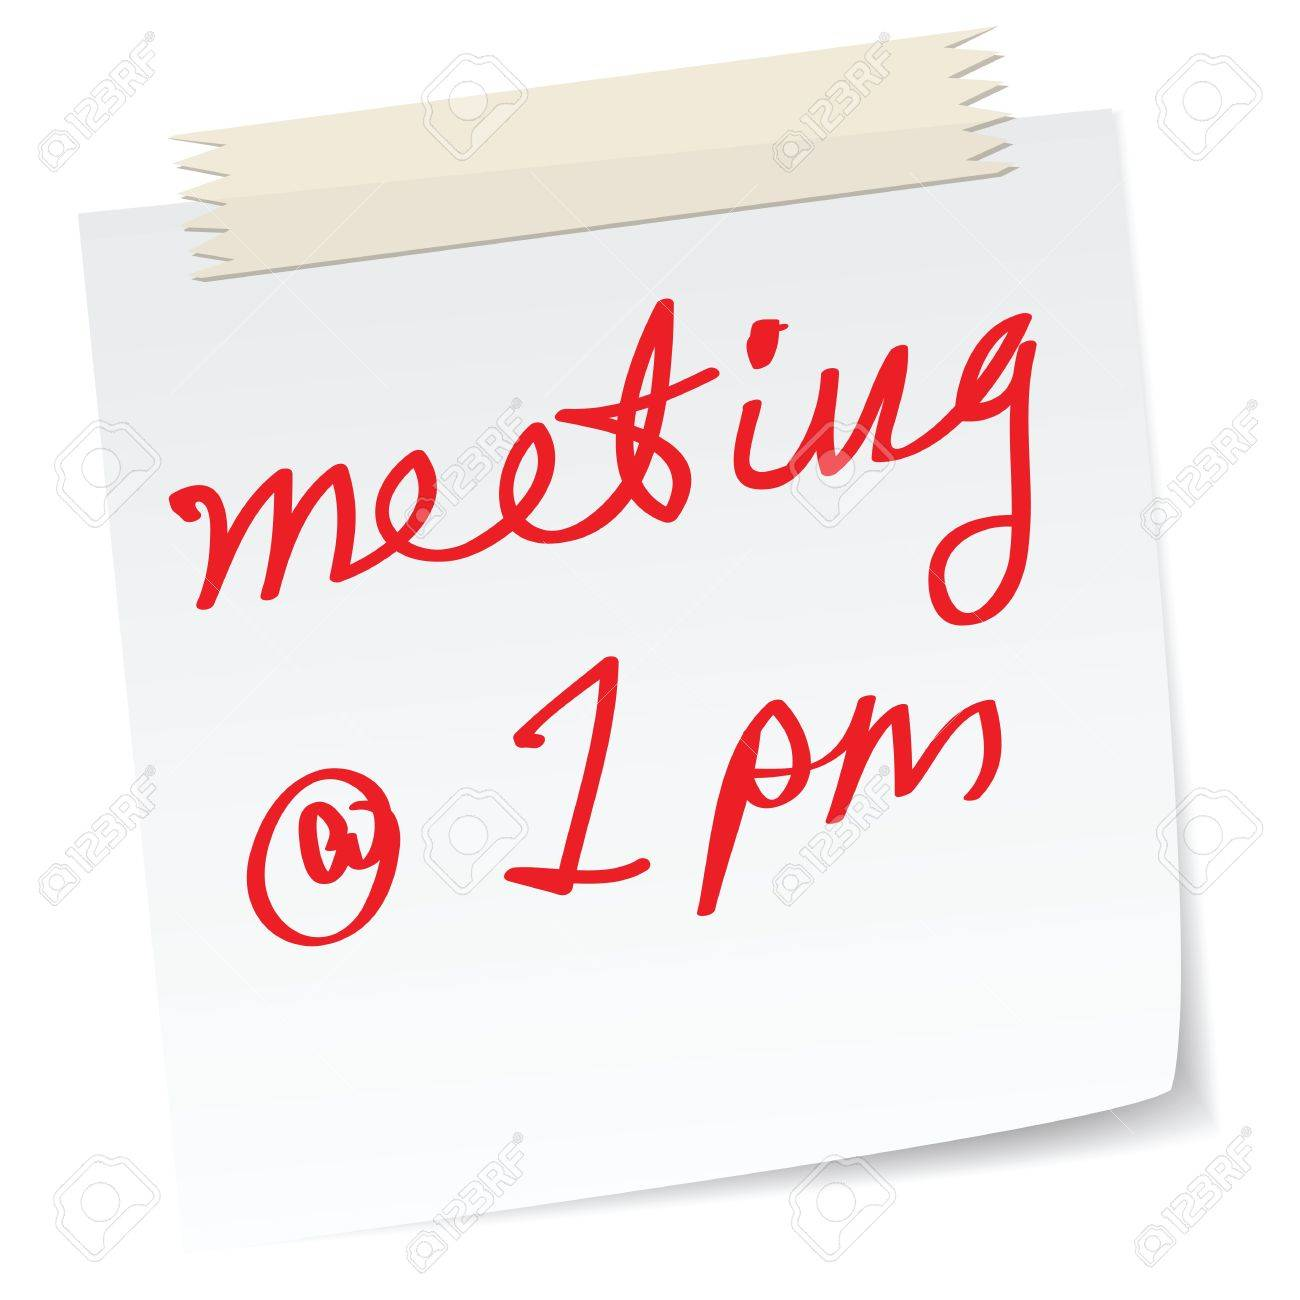 A Handwritten Notes With Meeting Appointments Time Royalty Free ...